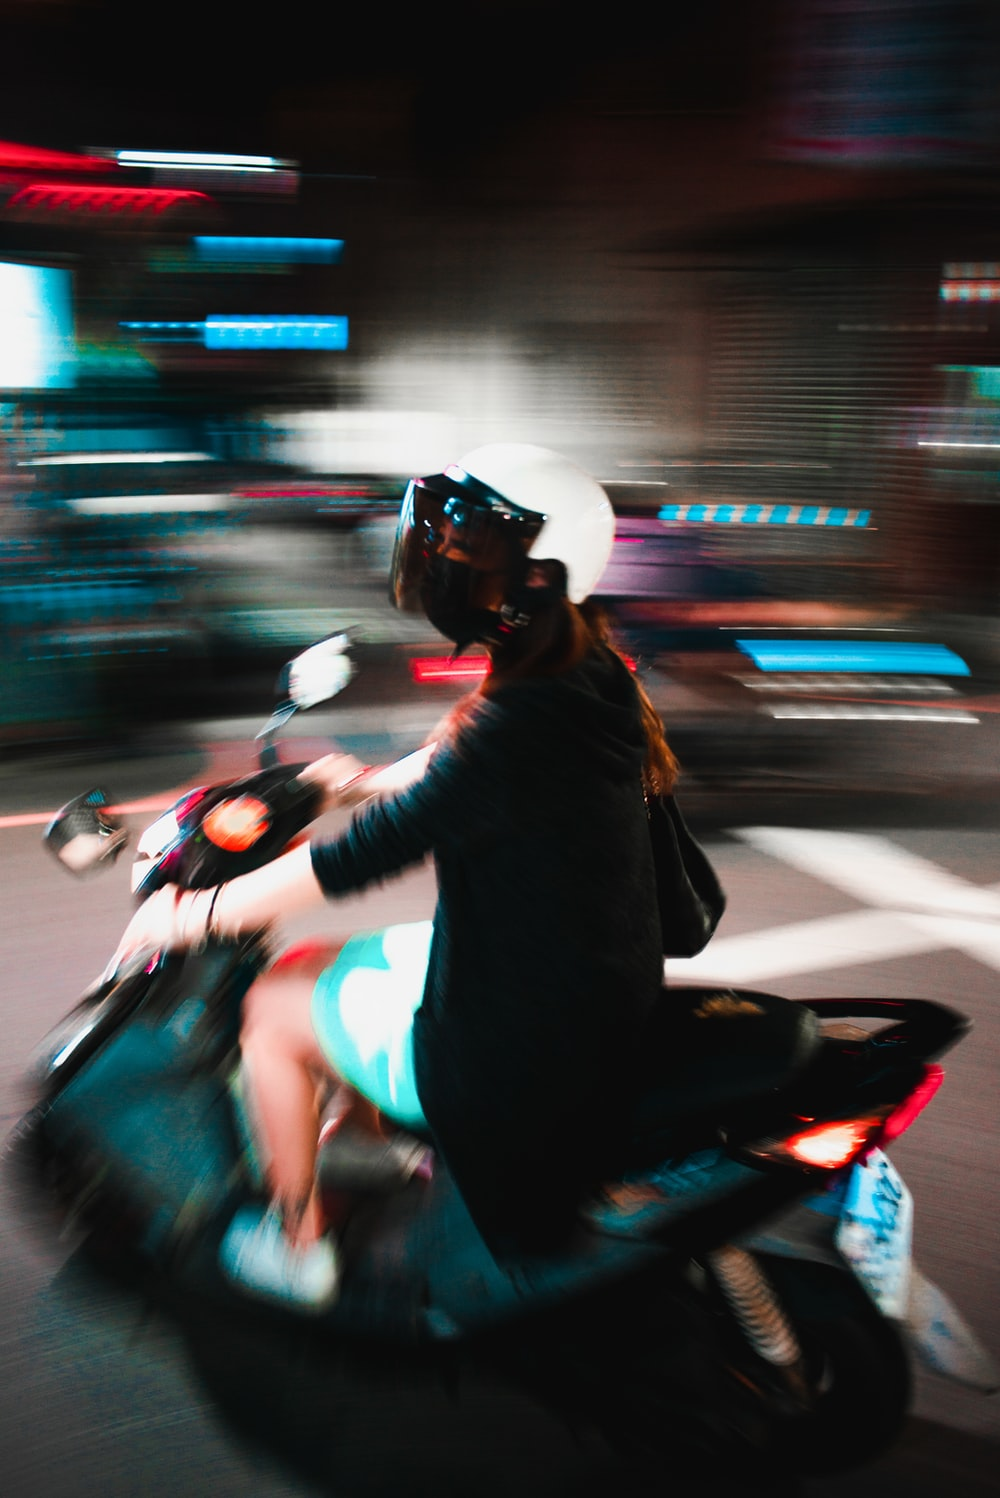 time lapse photography of man riding motorcycle during night time